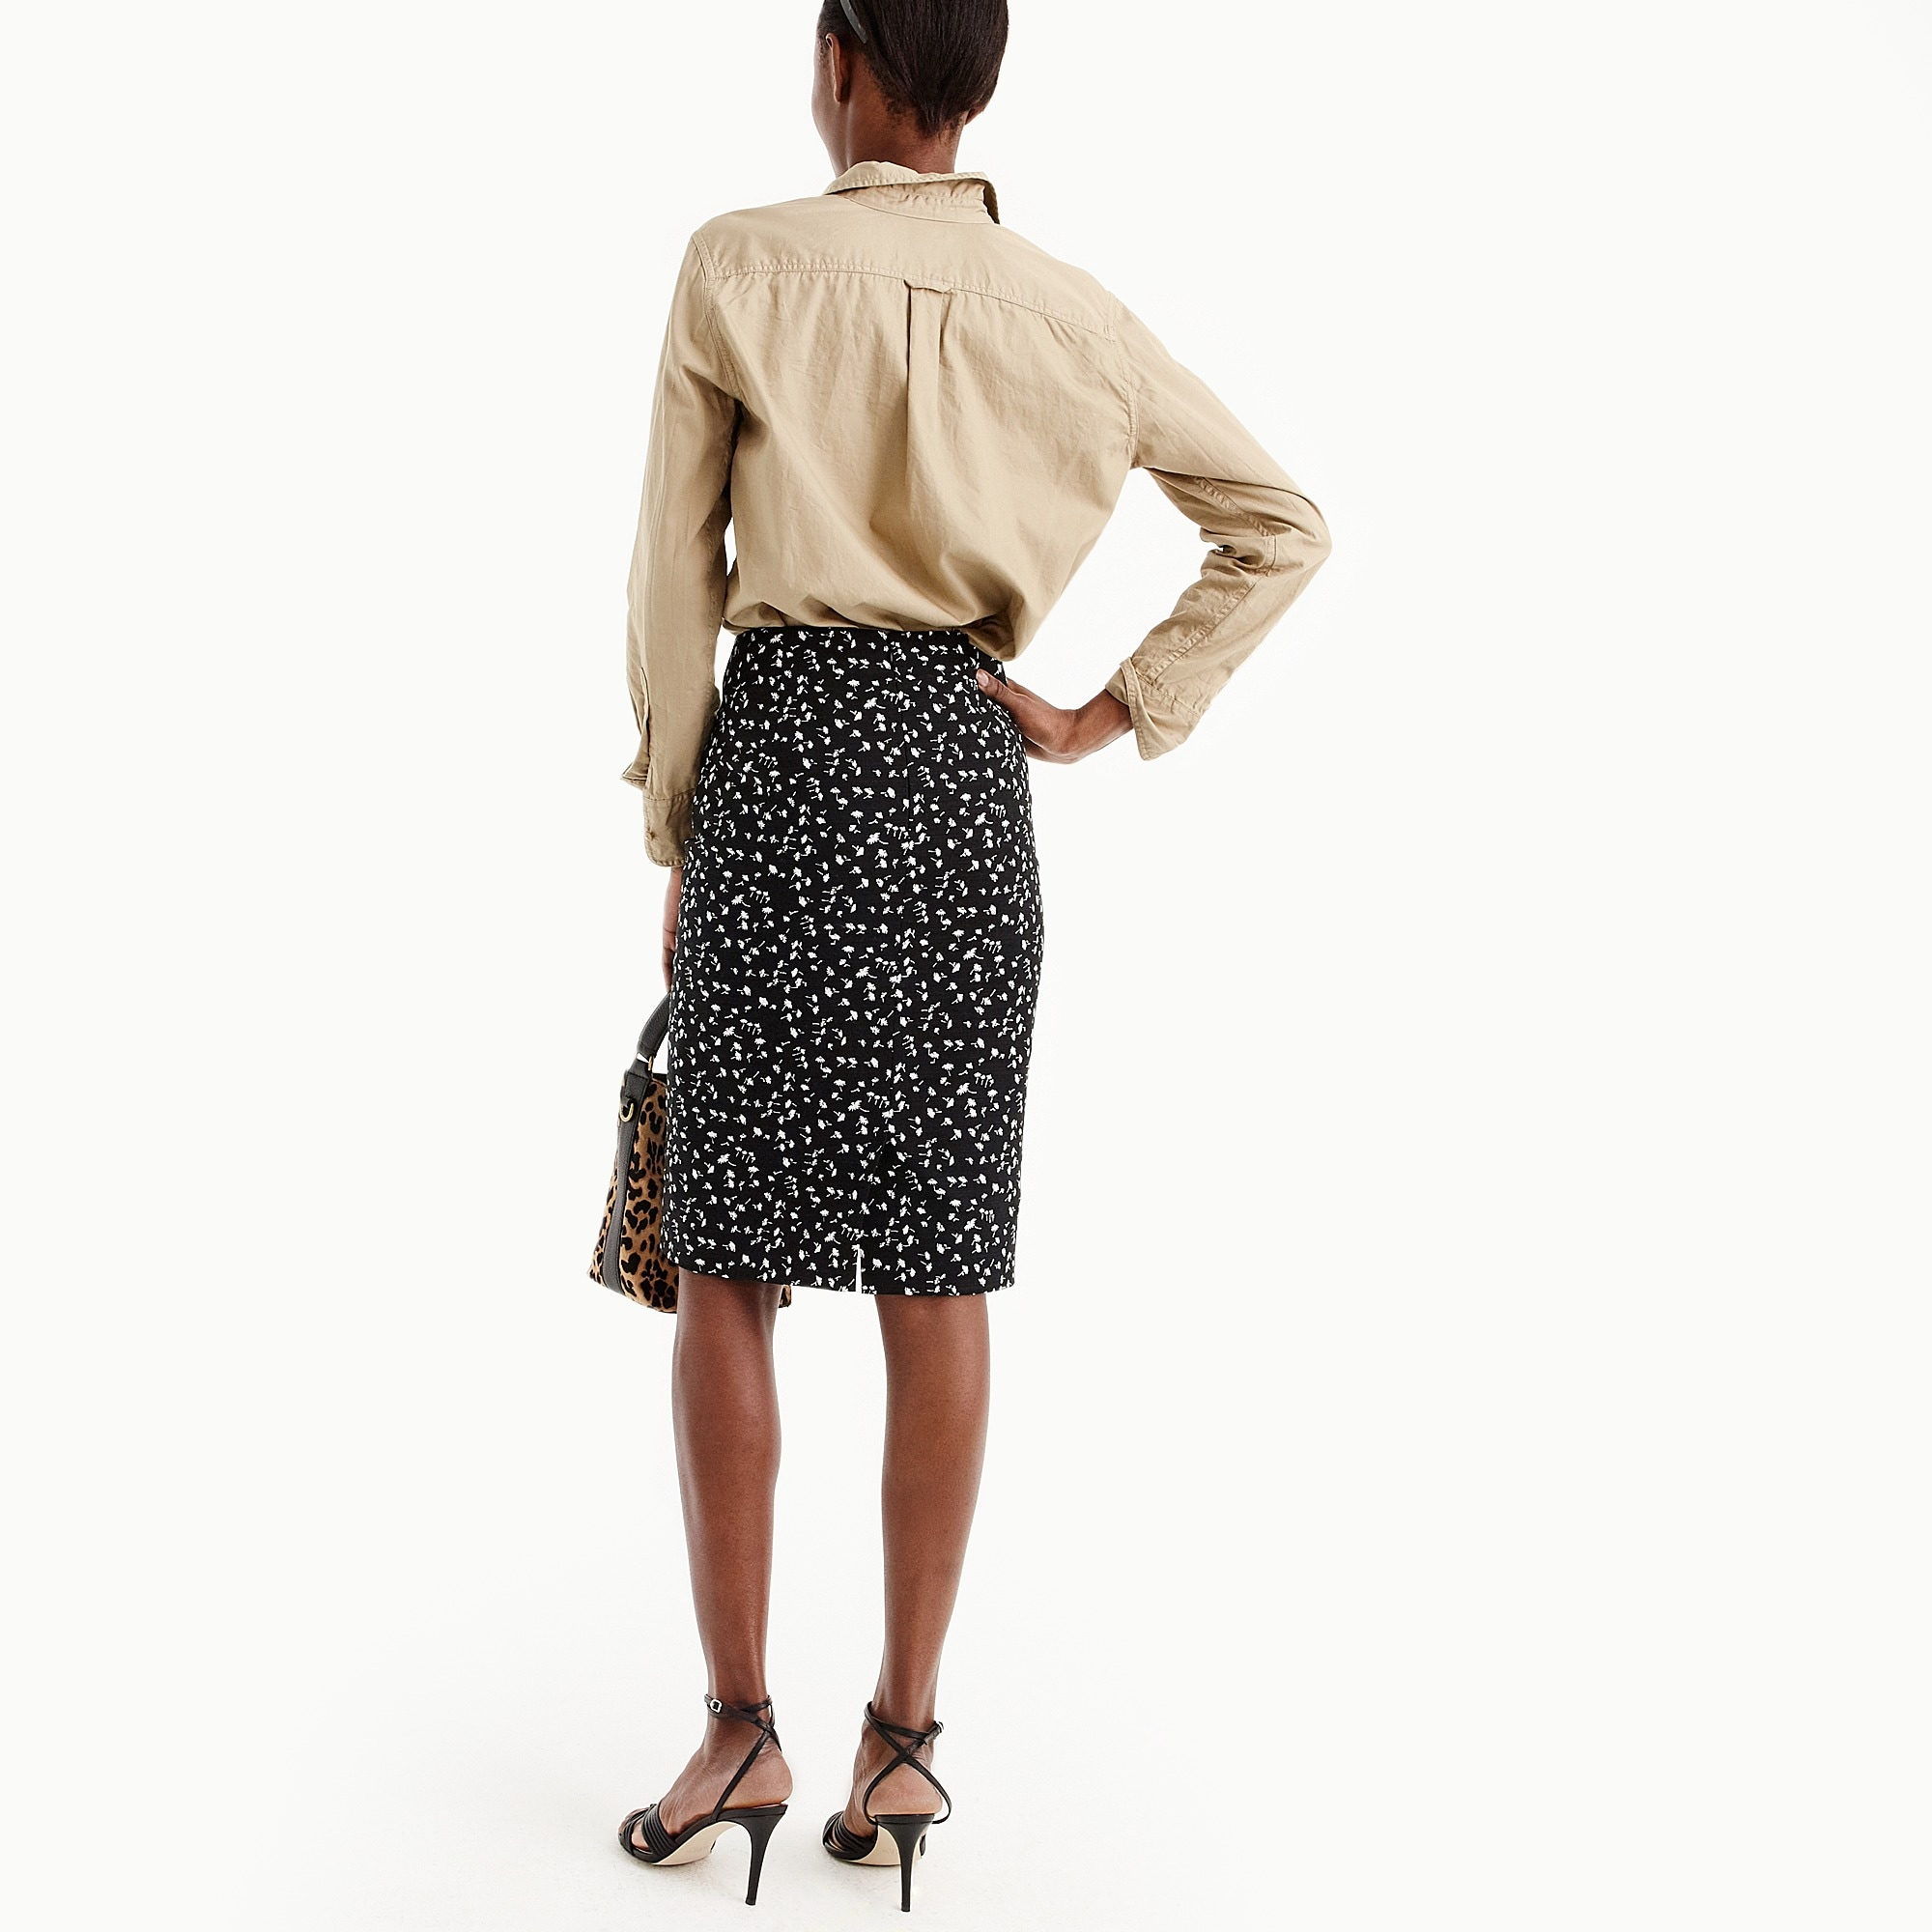 Image 3 for Pencil skirt in daisy floral